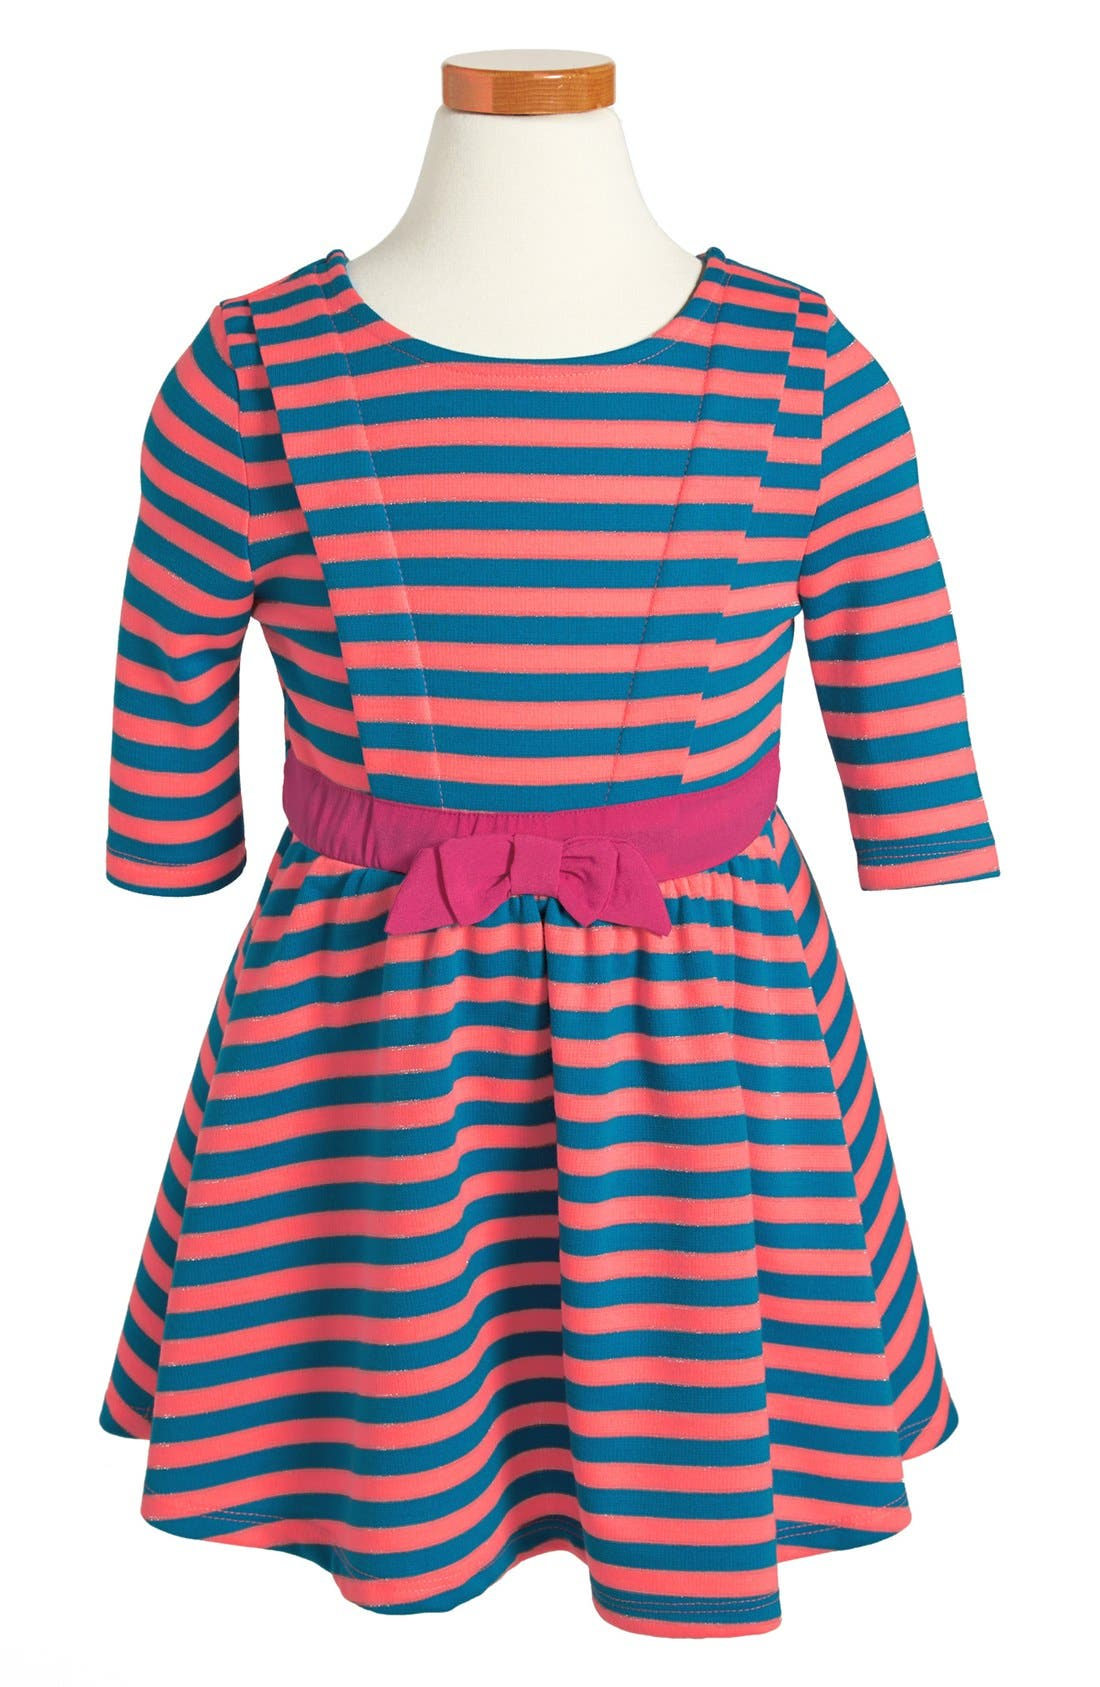 Alternate Image 1 Selected - Weavers Stripe Ponte Three Quarter Sleeve Dress (Toddler Girls)